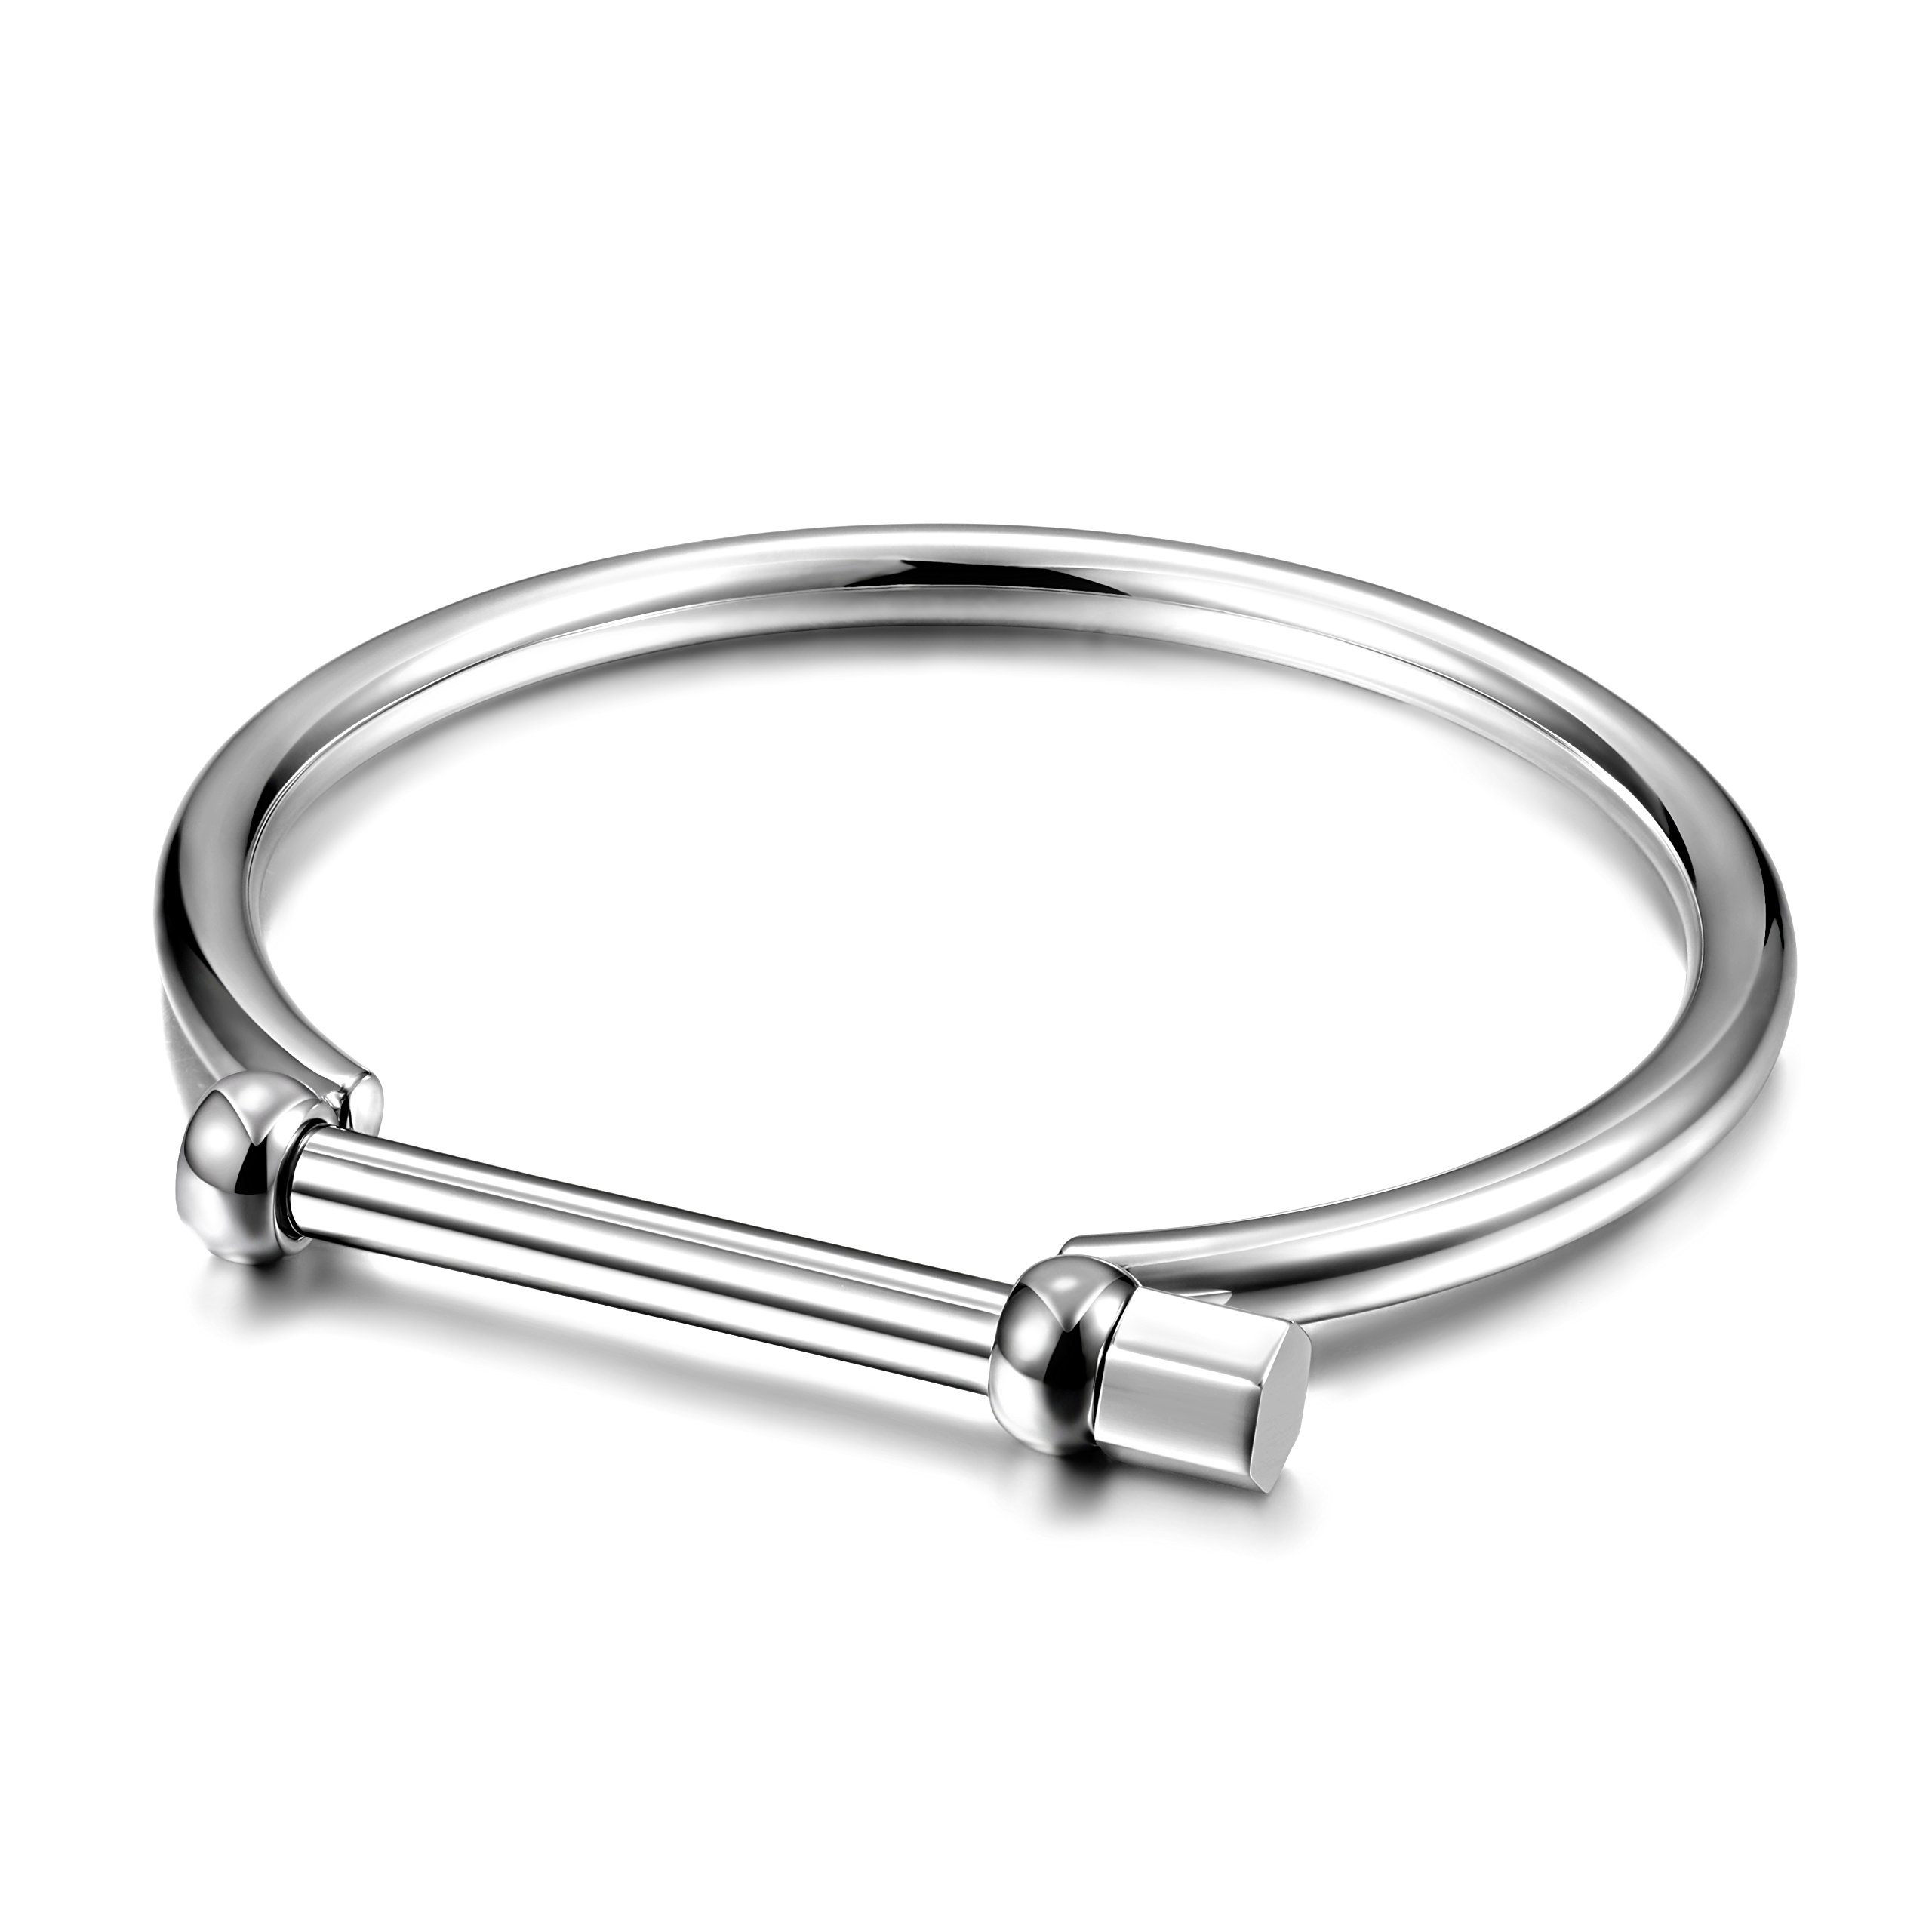 Wistic Gold Cuff Bangle Bracelet Stainless Steel Screw Bar Bracelet for Women Men (Black Male) (Male White)